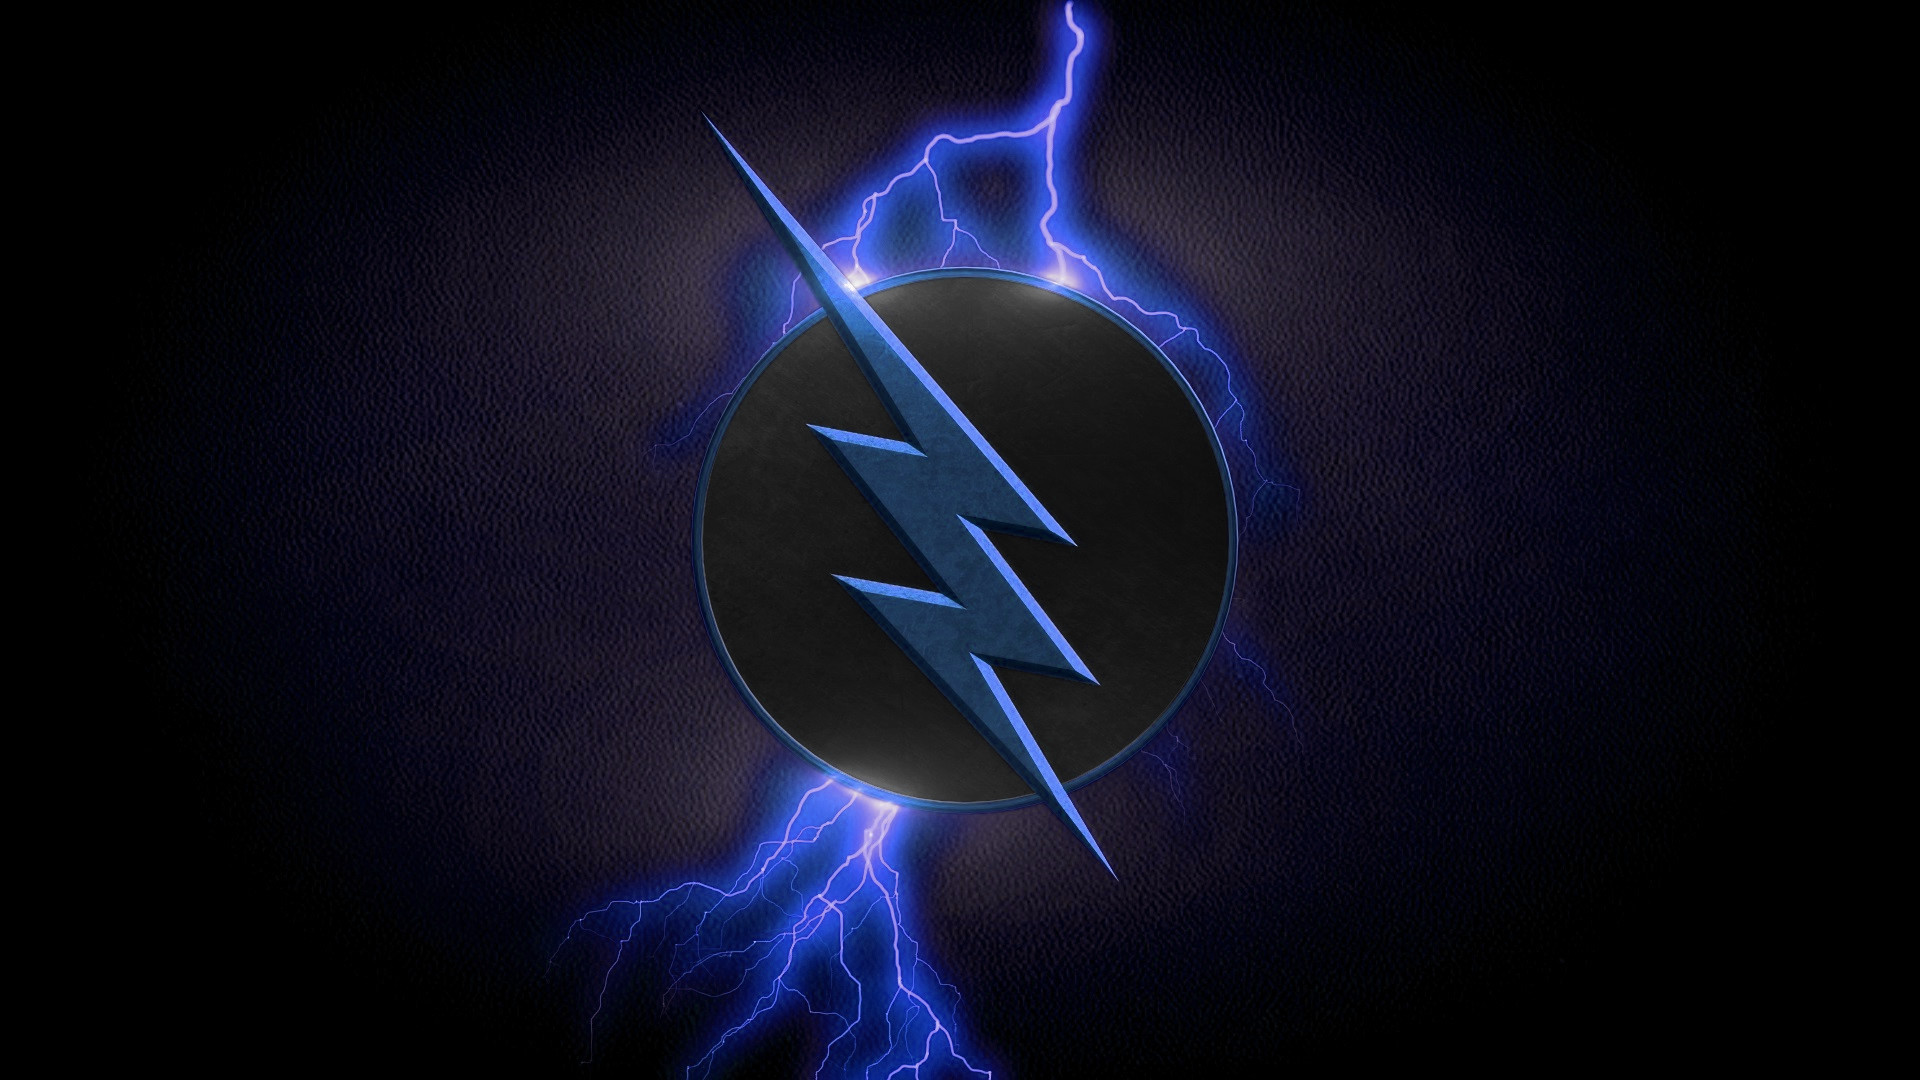 The Flash Zoom Wallpaper 75 images